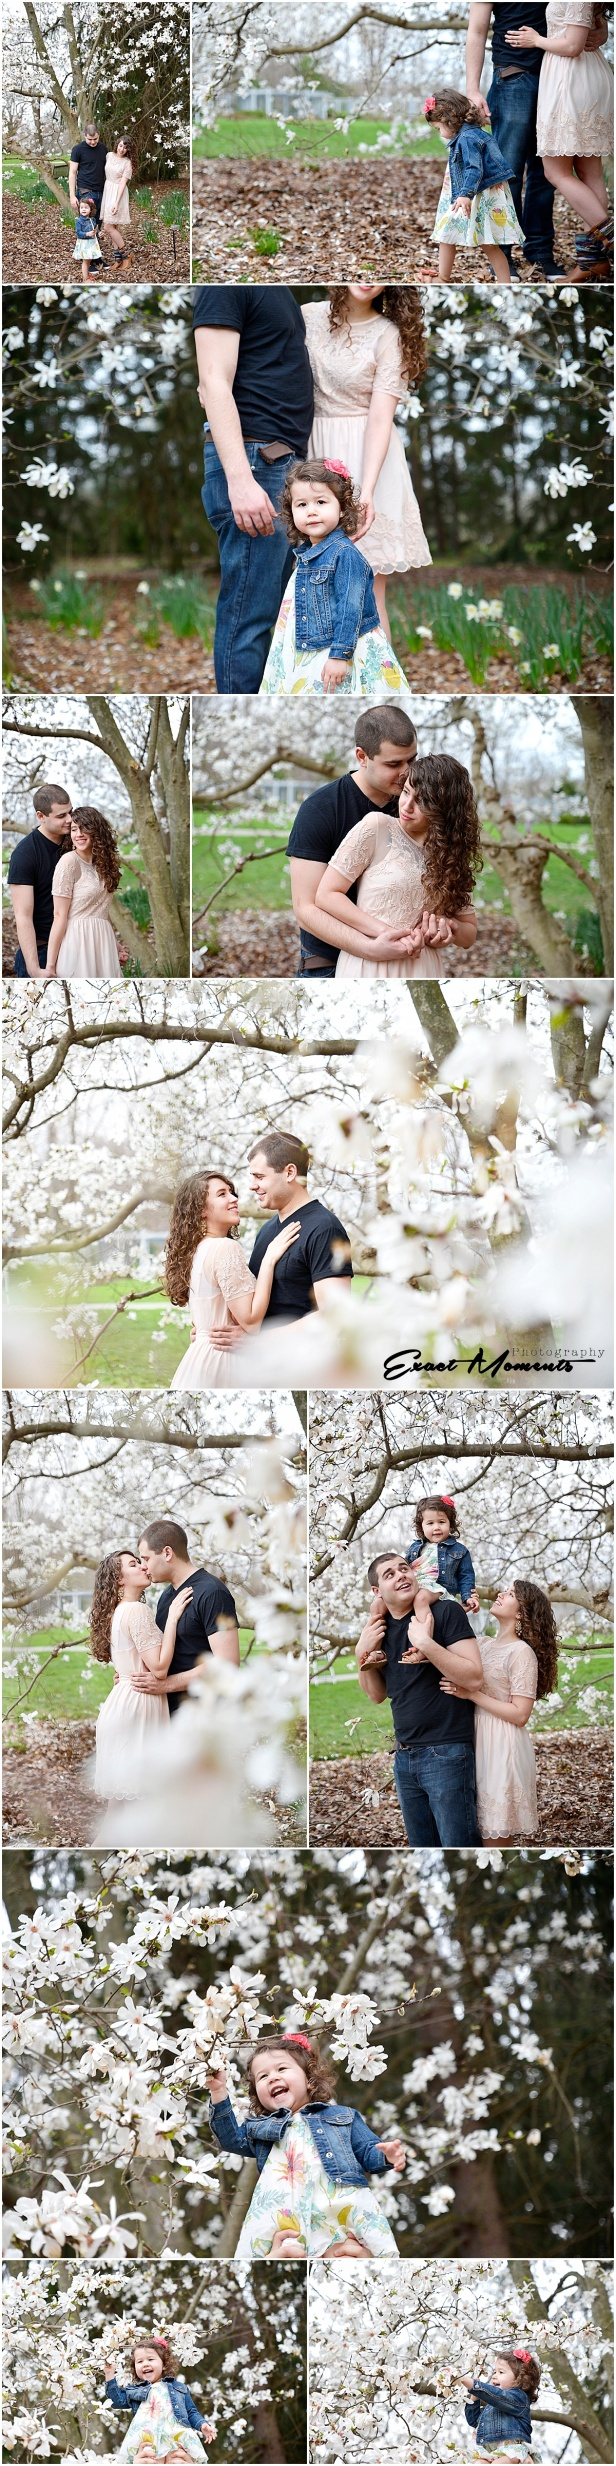 Engagement photos in Inniswood Metro Gardens